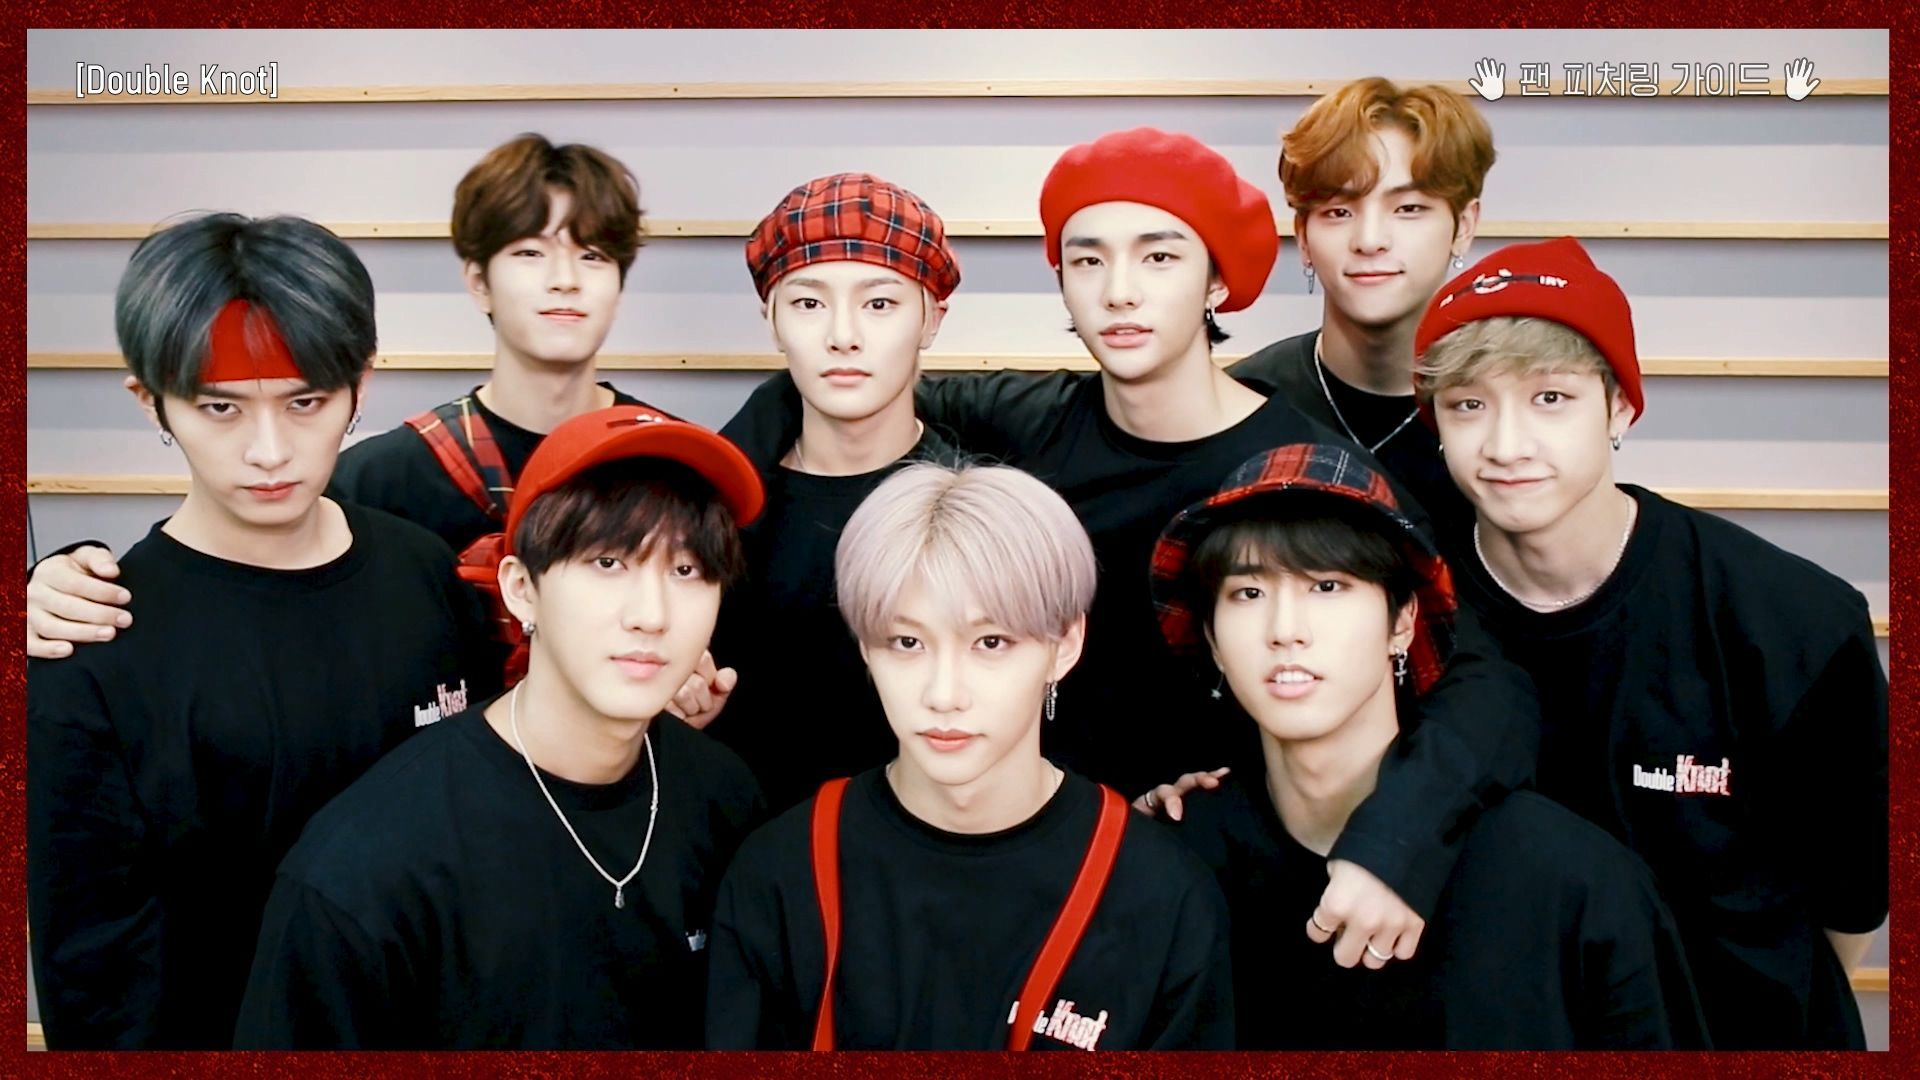 Stray Kids 2020 Wallpapers Top Free Stray Kids 2020 Backgrounds Wallpaperaccess